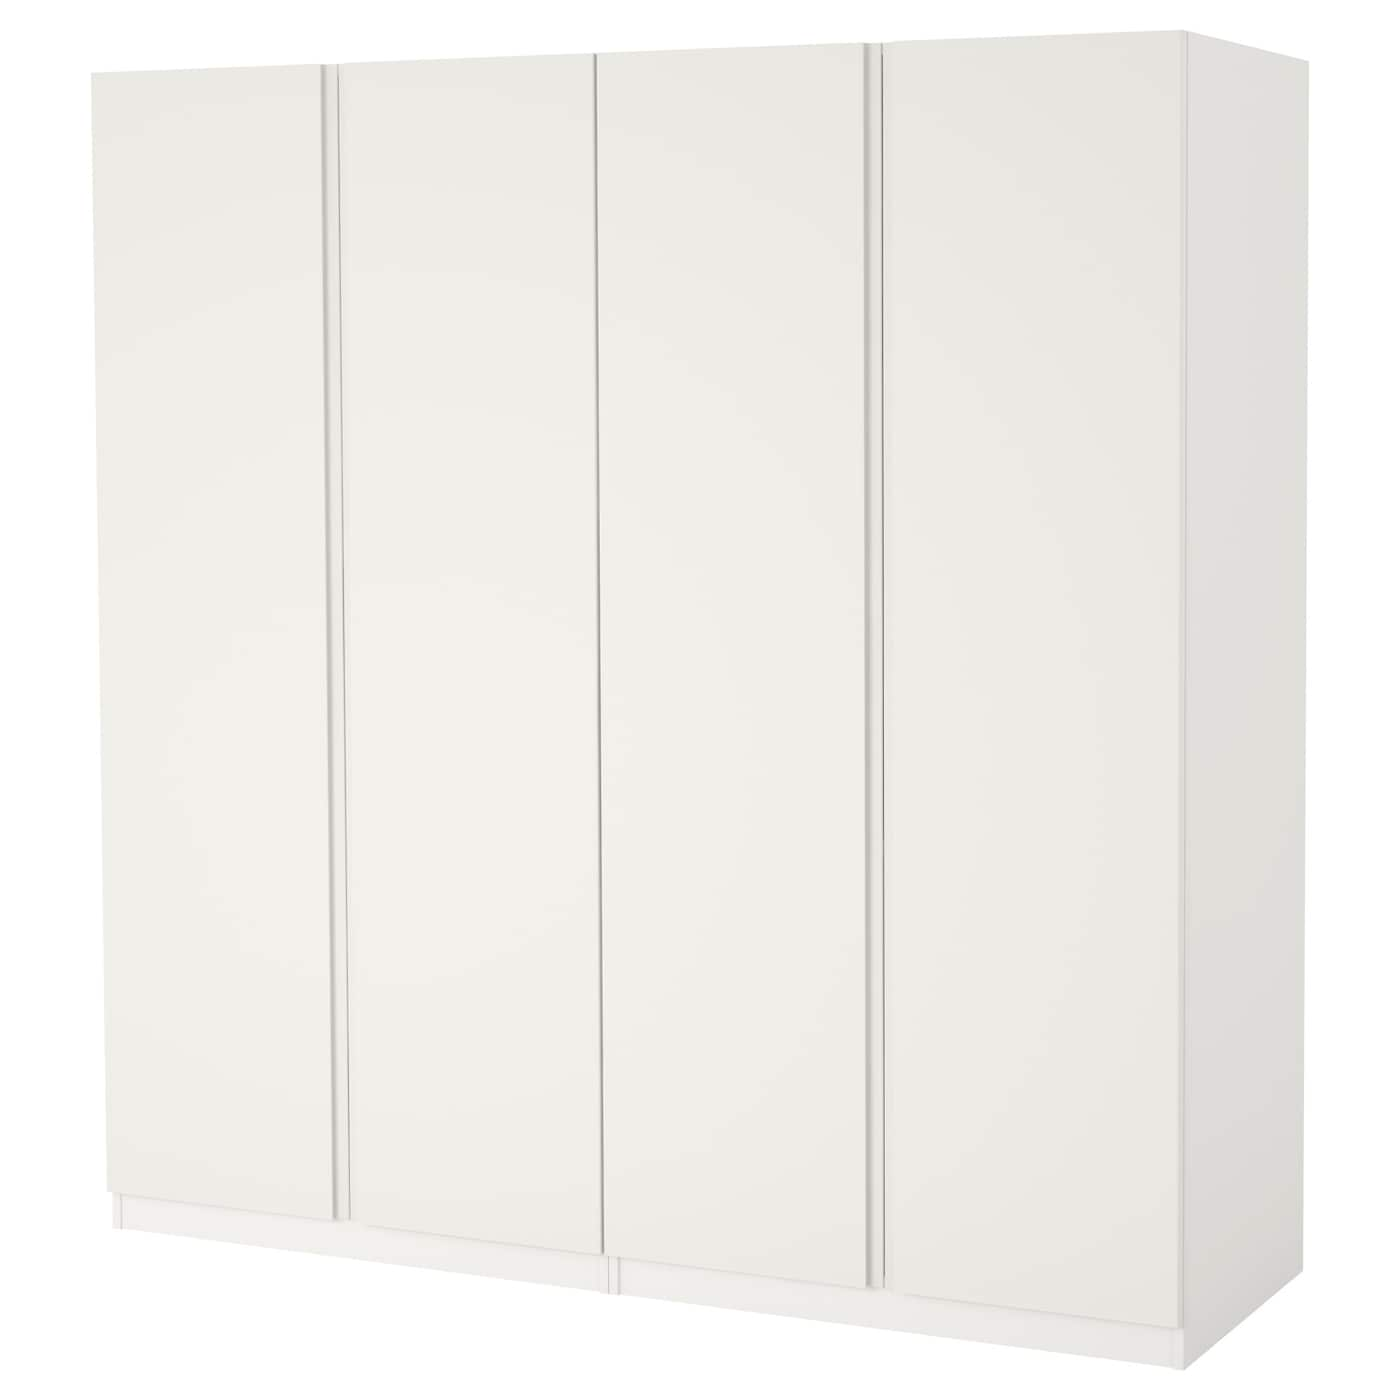 pax wardrobe white vikanes white 200 x 60 x 201 cm ikea. Black Bedroom Furniture Sets. Home Design Ideas